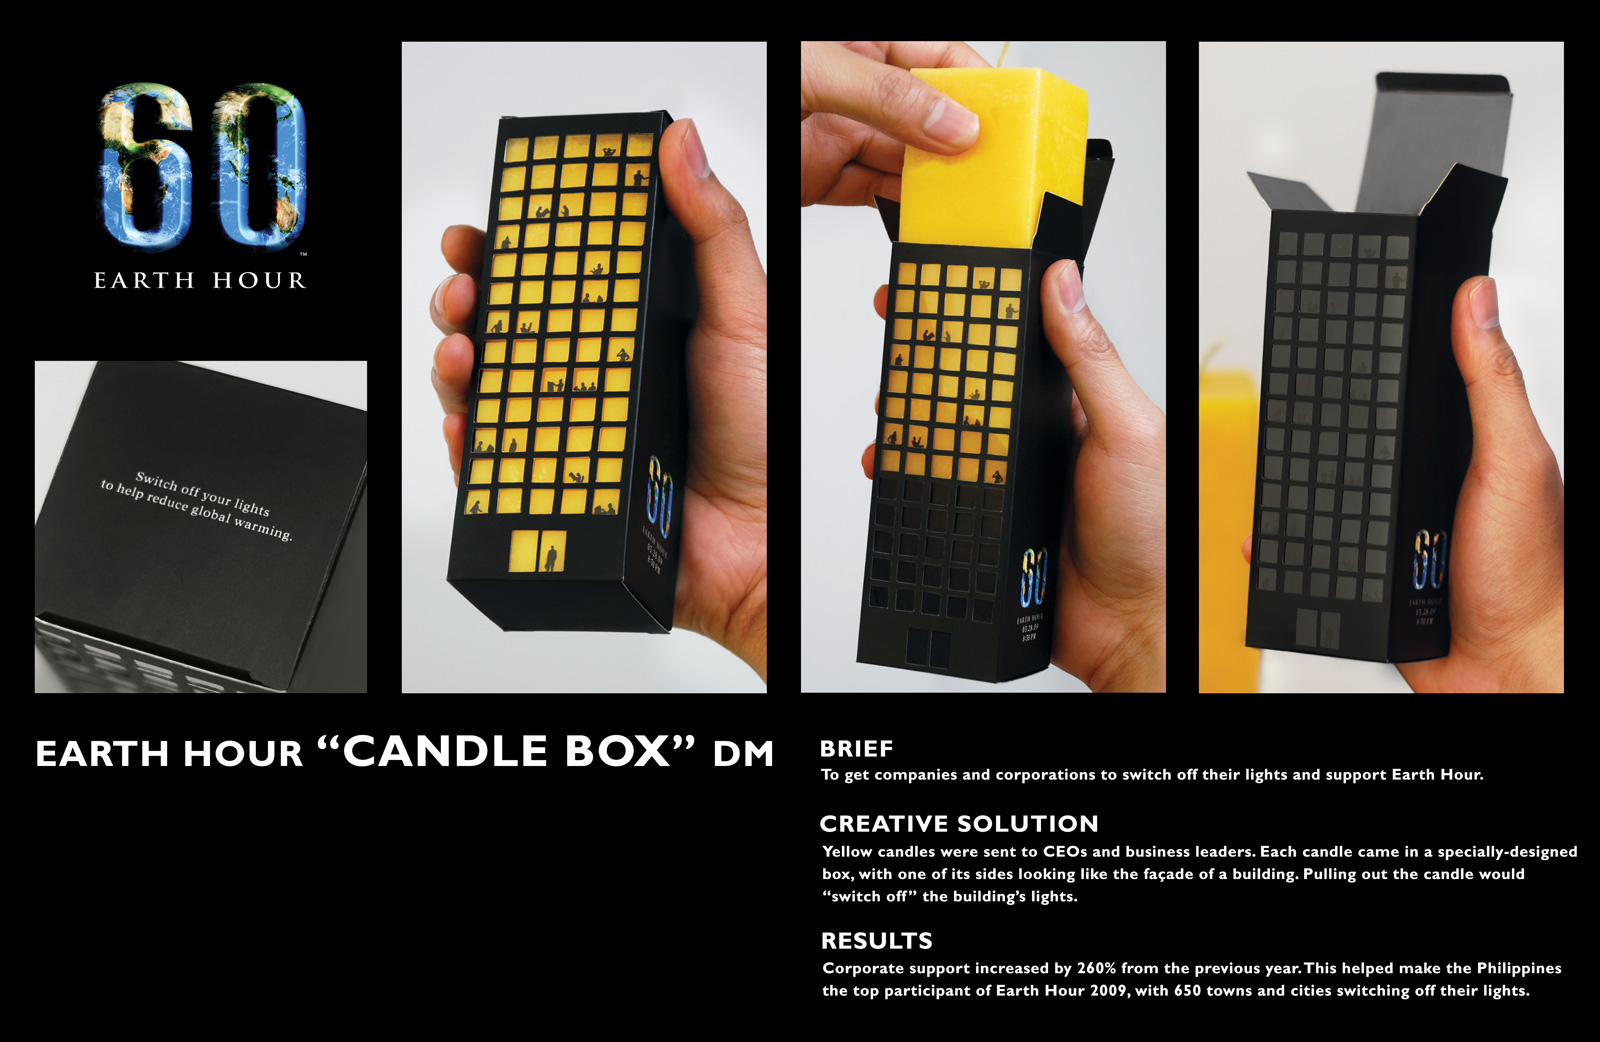 Candle Box for Earth Hour direct mail marketing idea